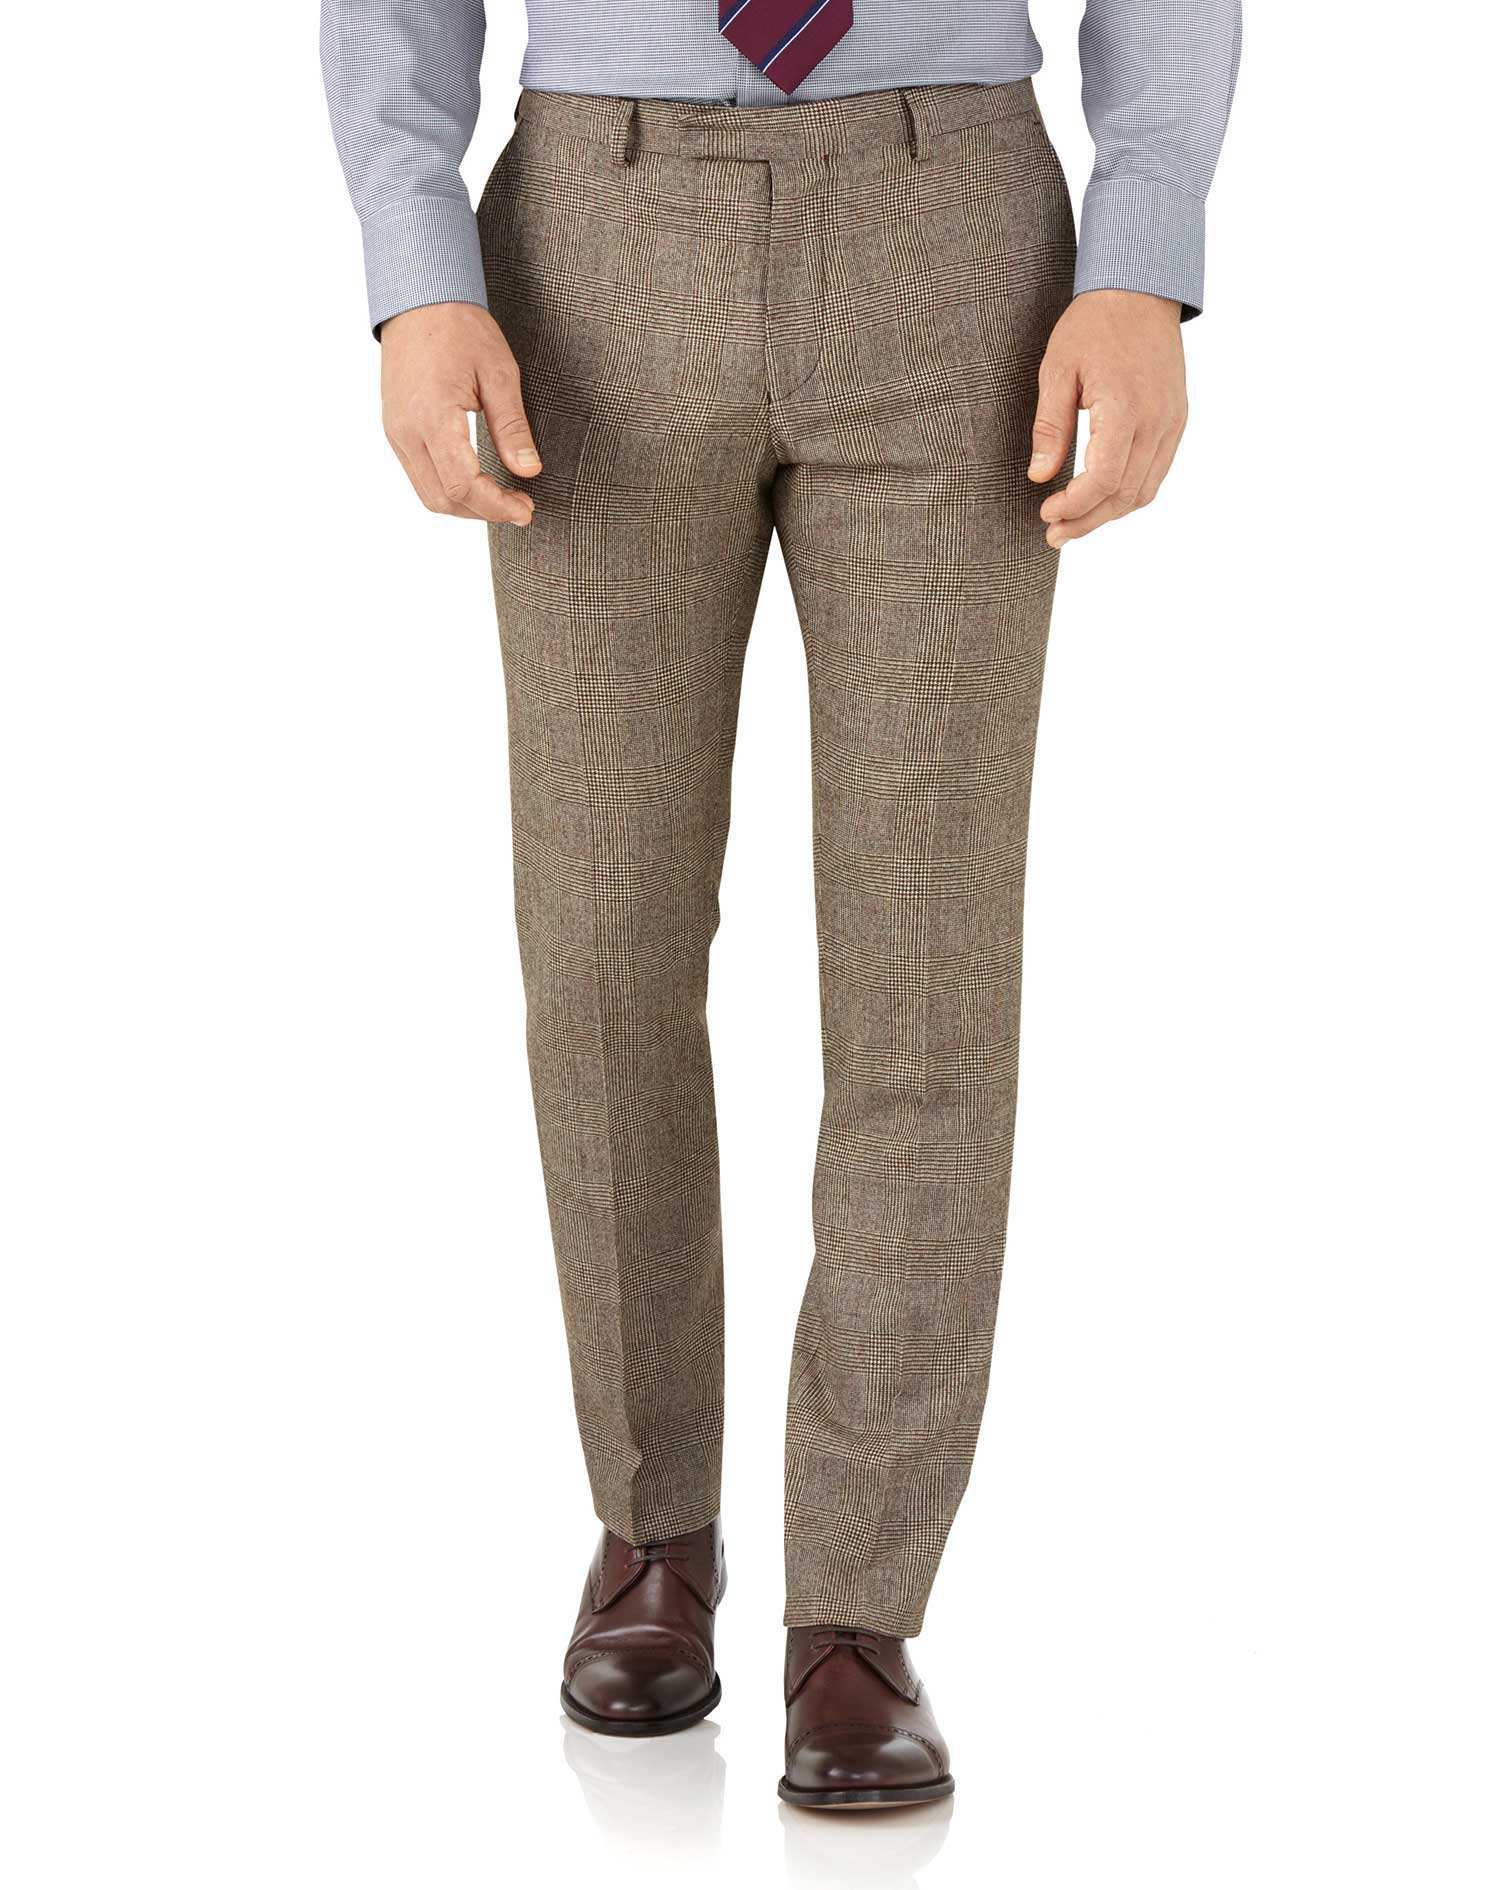 Tan Check Slim Fit British Serge Luxury Suit Trousers Size W38 L34 by Charles Tyrwhitt